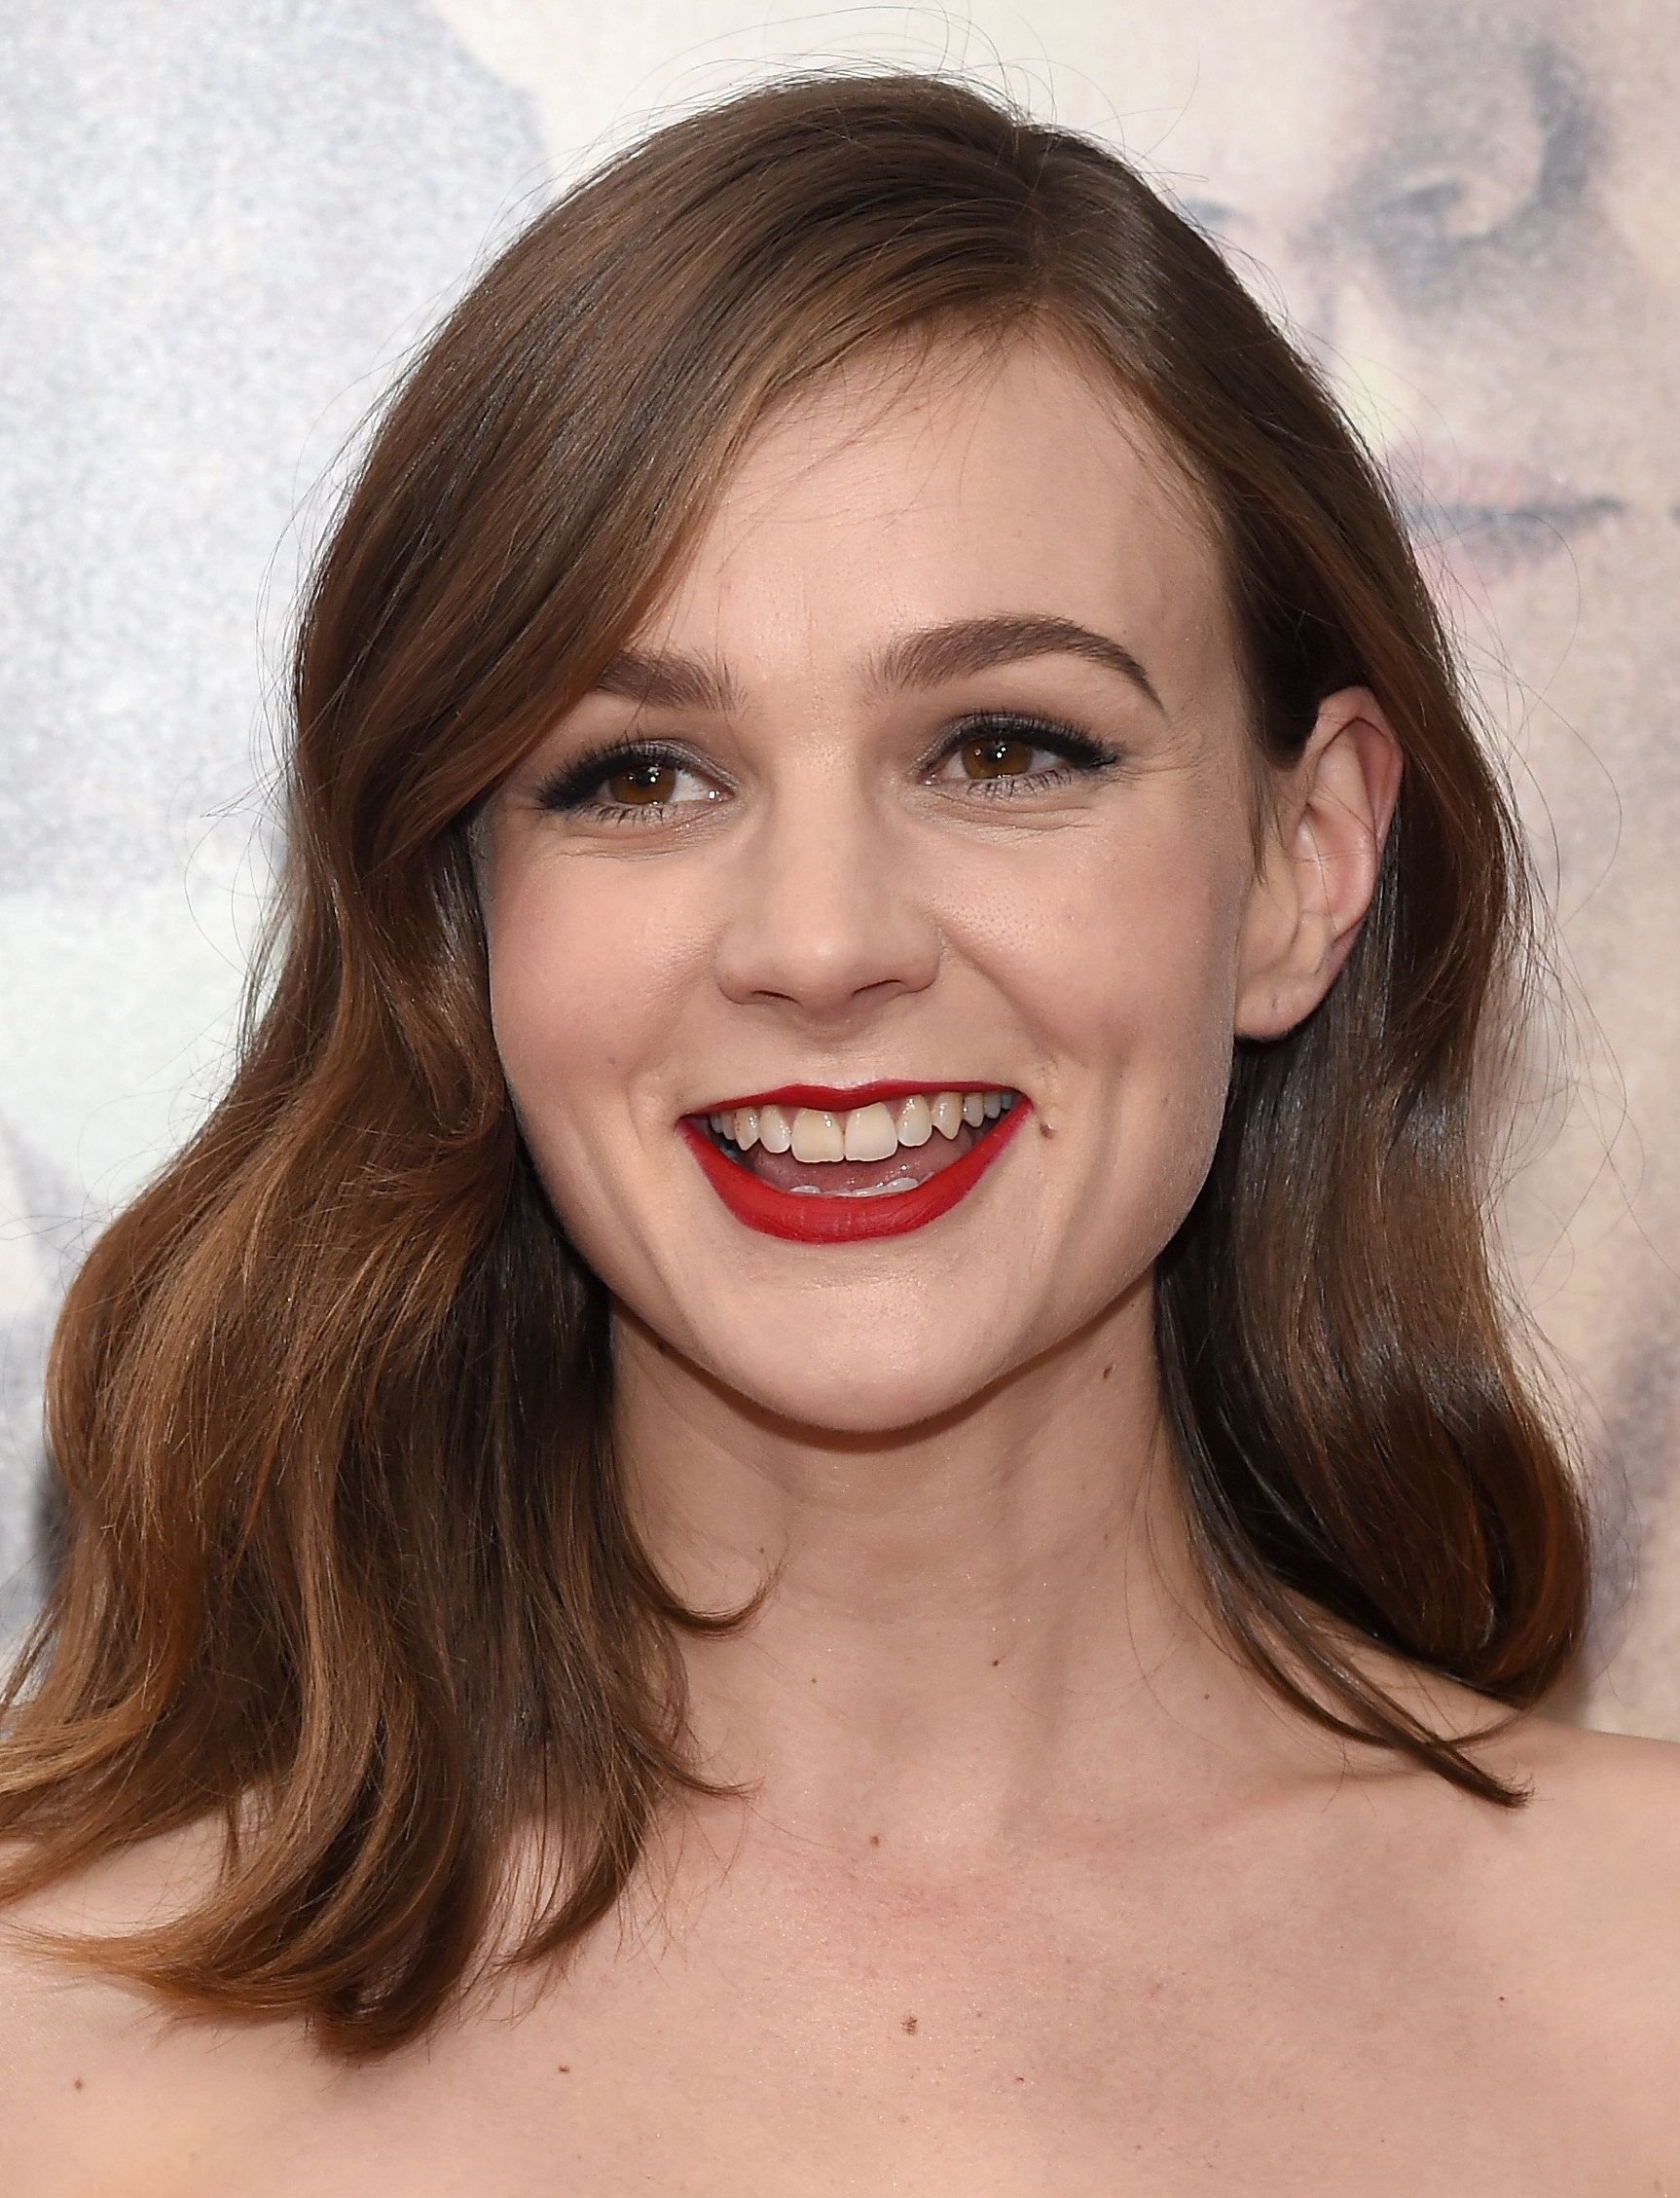 Actress Carey Mulligan attends the 'Suffragette' New York Premiere at The Paris Theatre on October 12, 2015 in New York City.